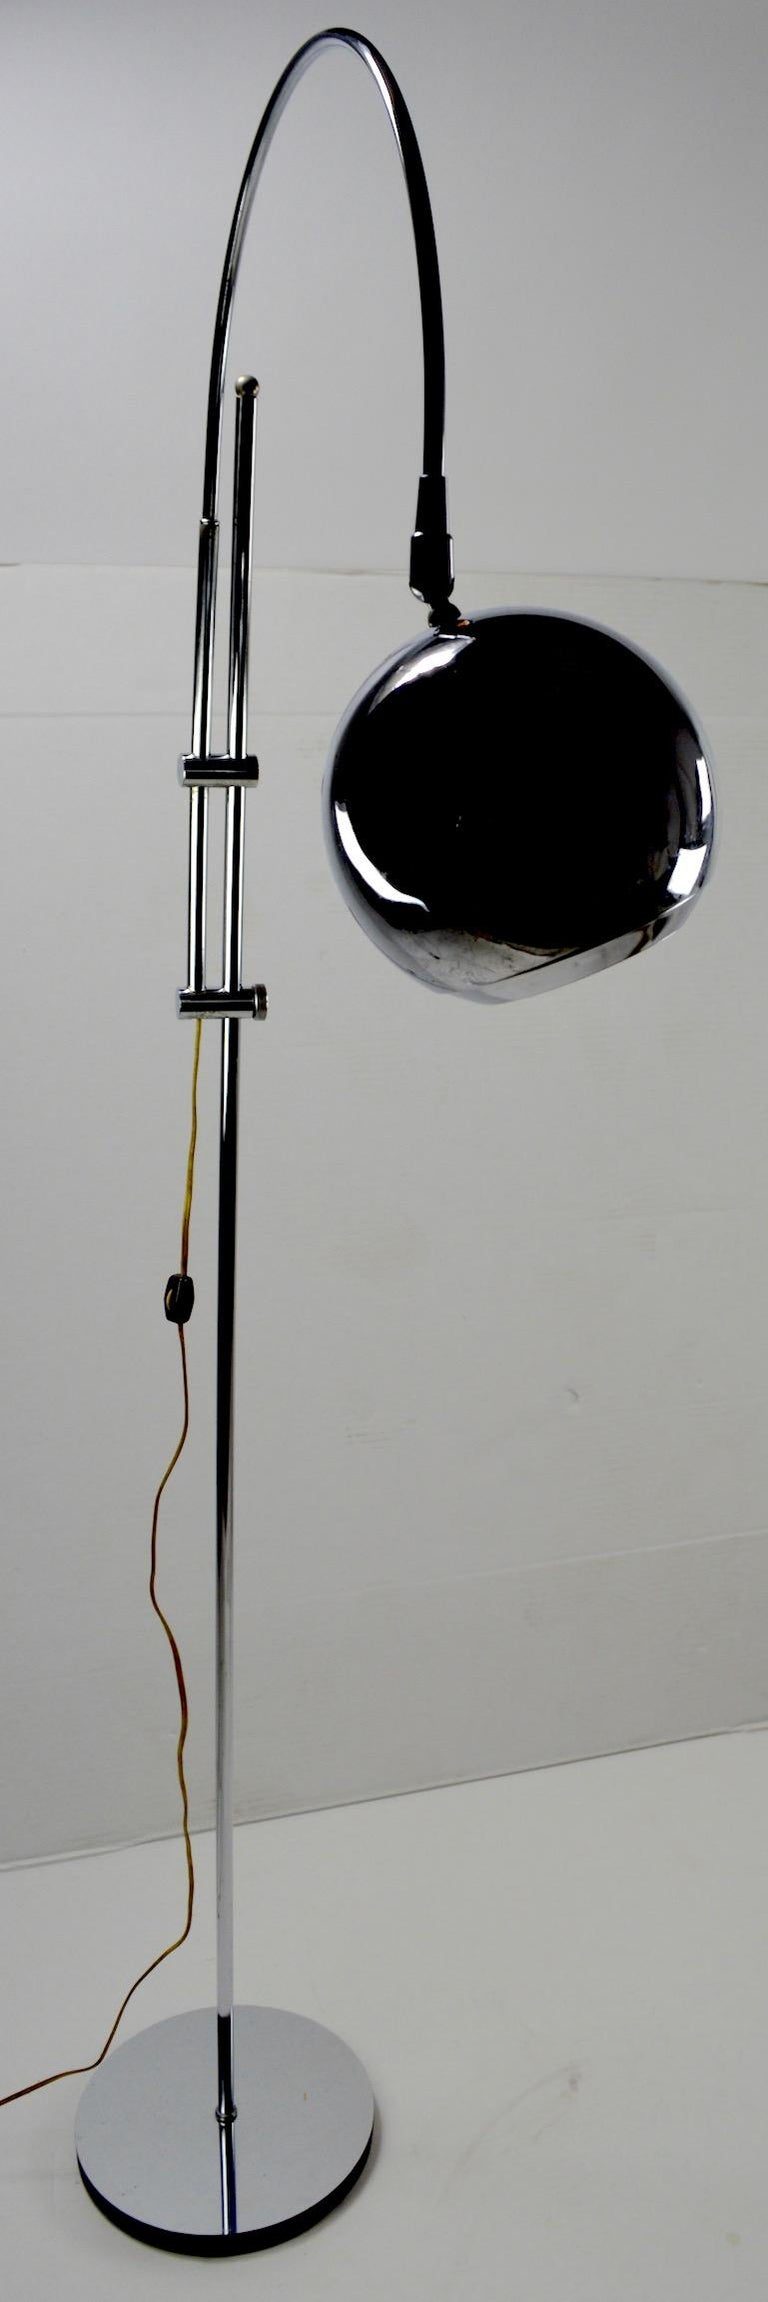 Adjustable Chrome Arc Lamp with Eyeball Shade For Sale 1